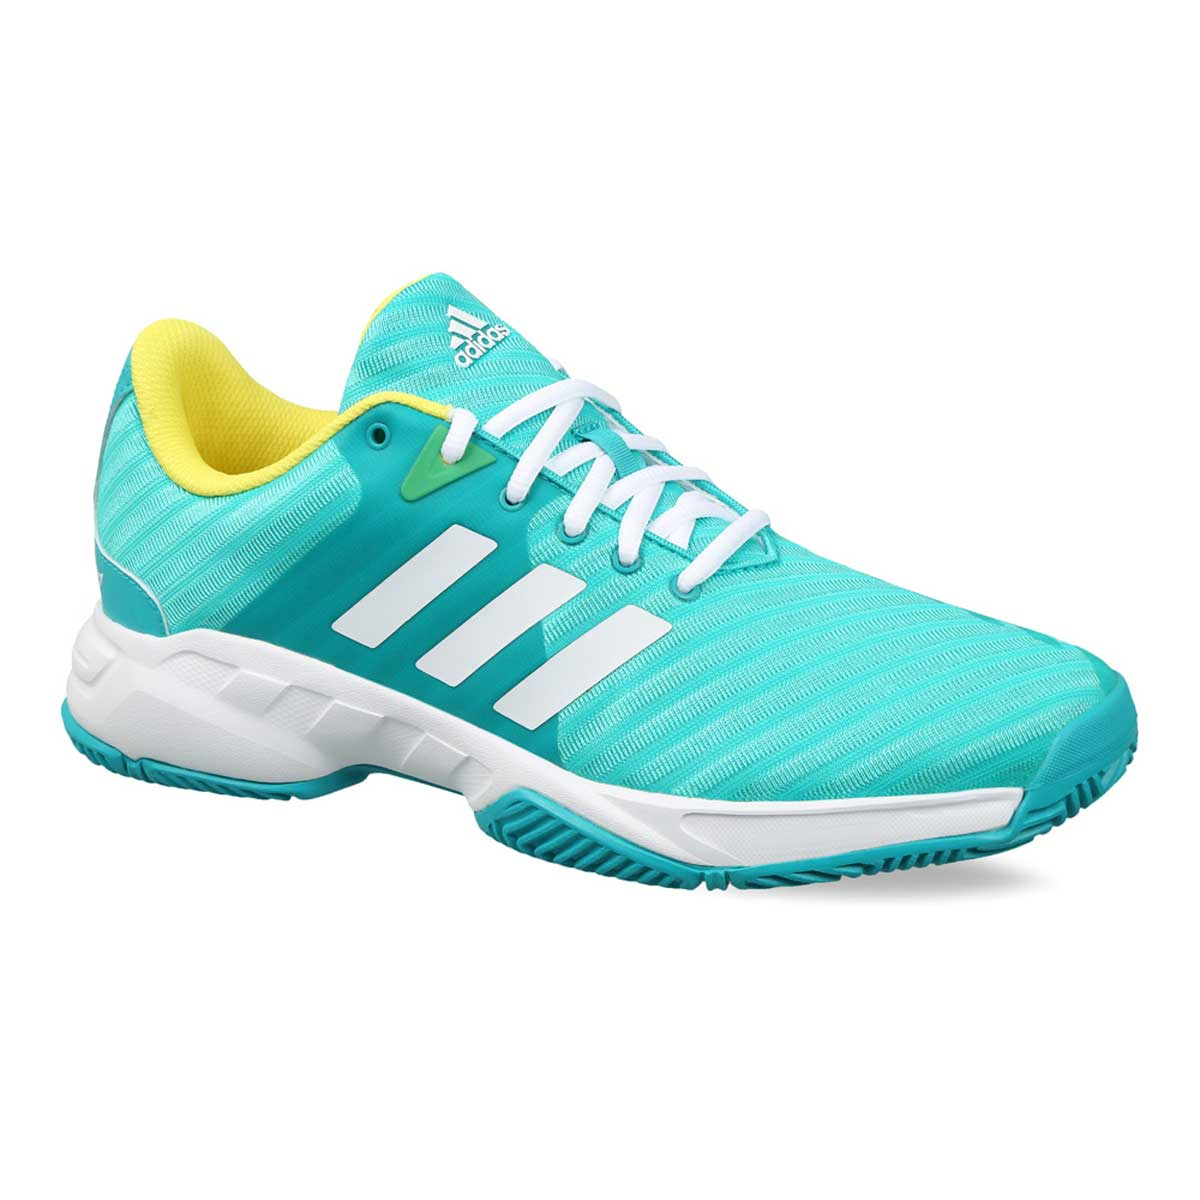 1145d239246344 Buy Adidas Barricade Court 3 Tennis Shoes (Green/White) Online